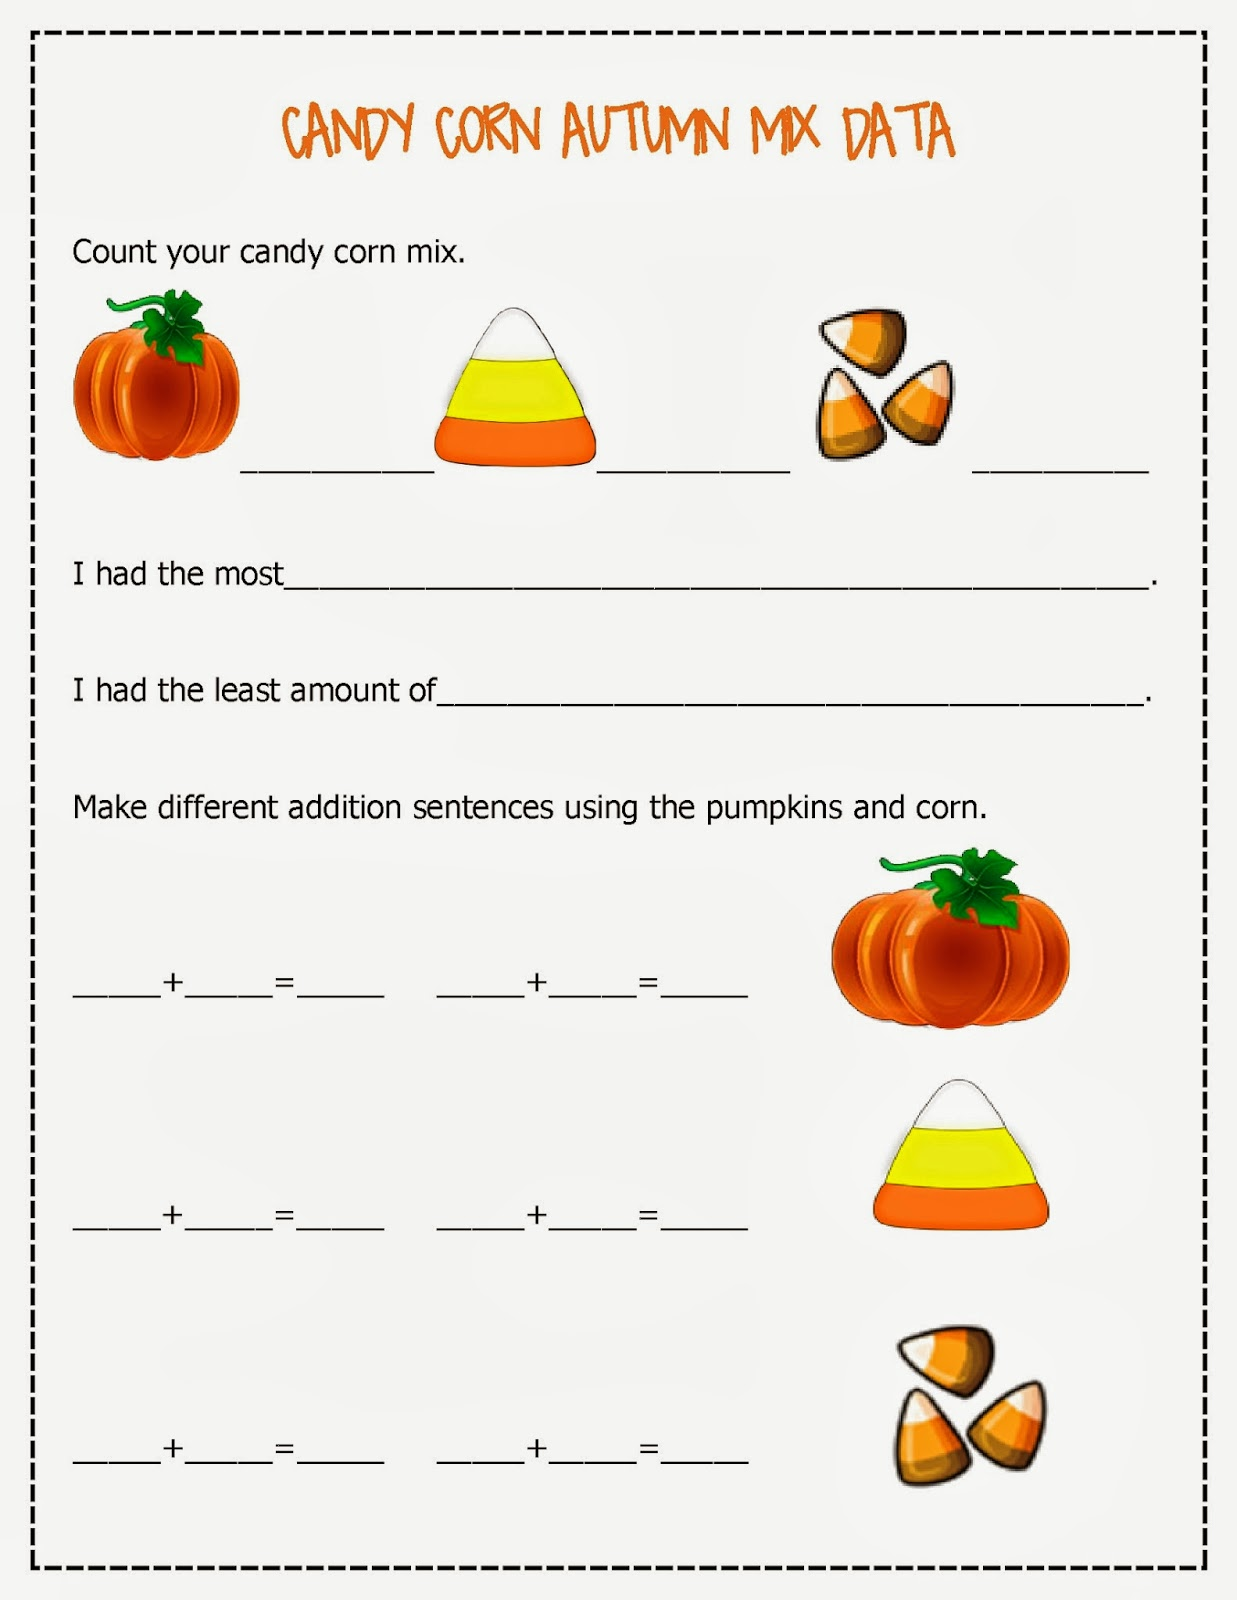 candy corn autumn mix free math worksheets  mehaffey moments candy corn autumn mix math worksheet